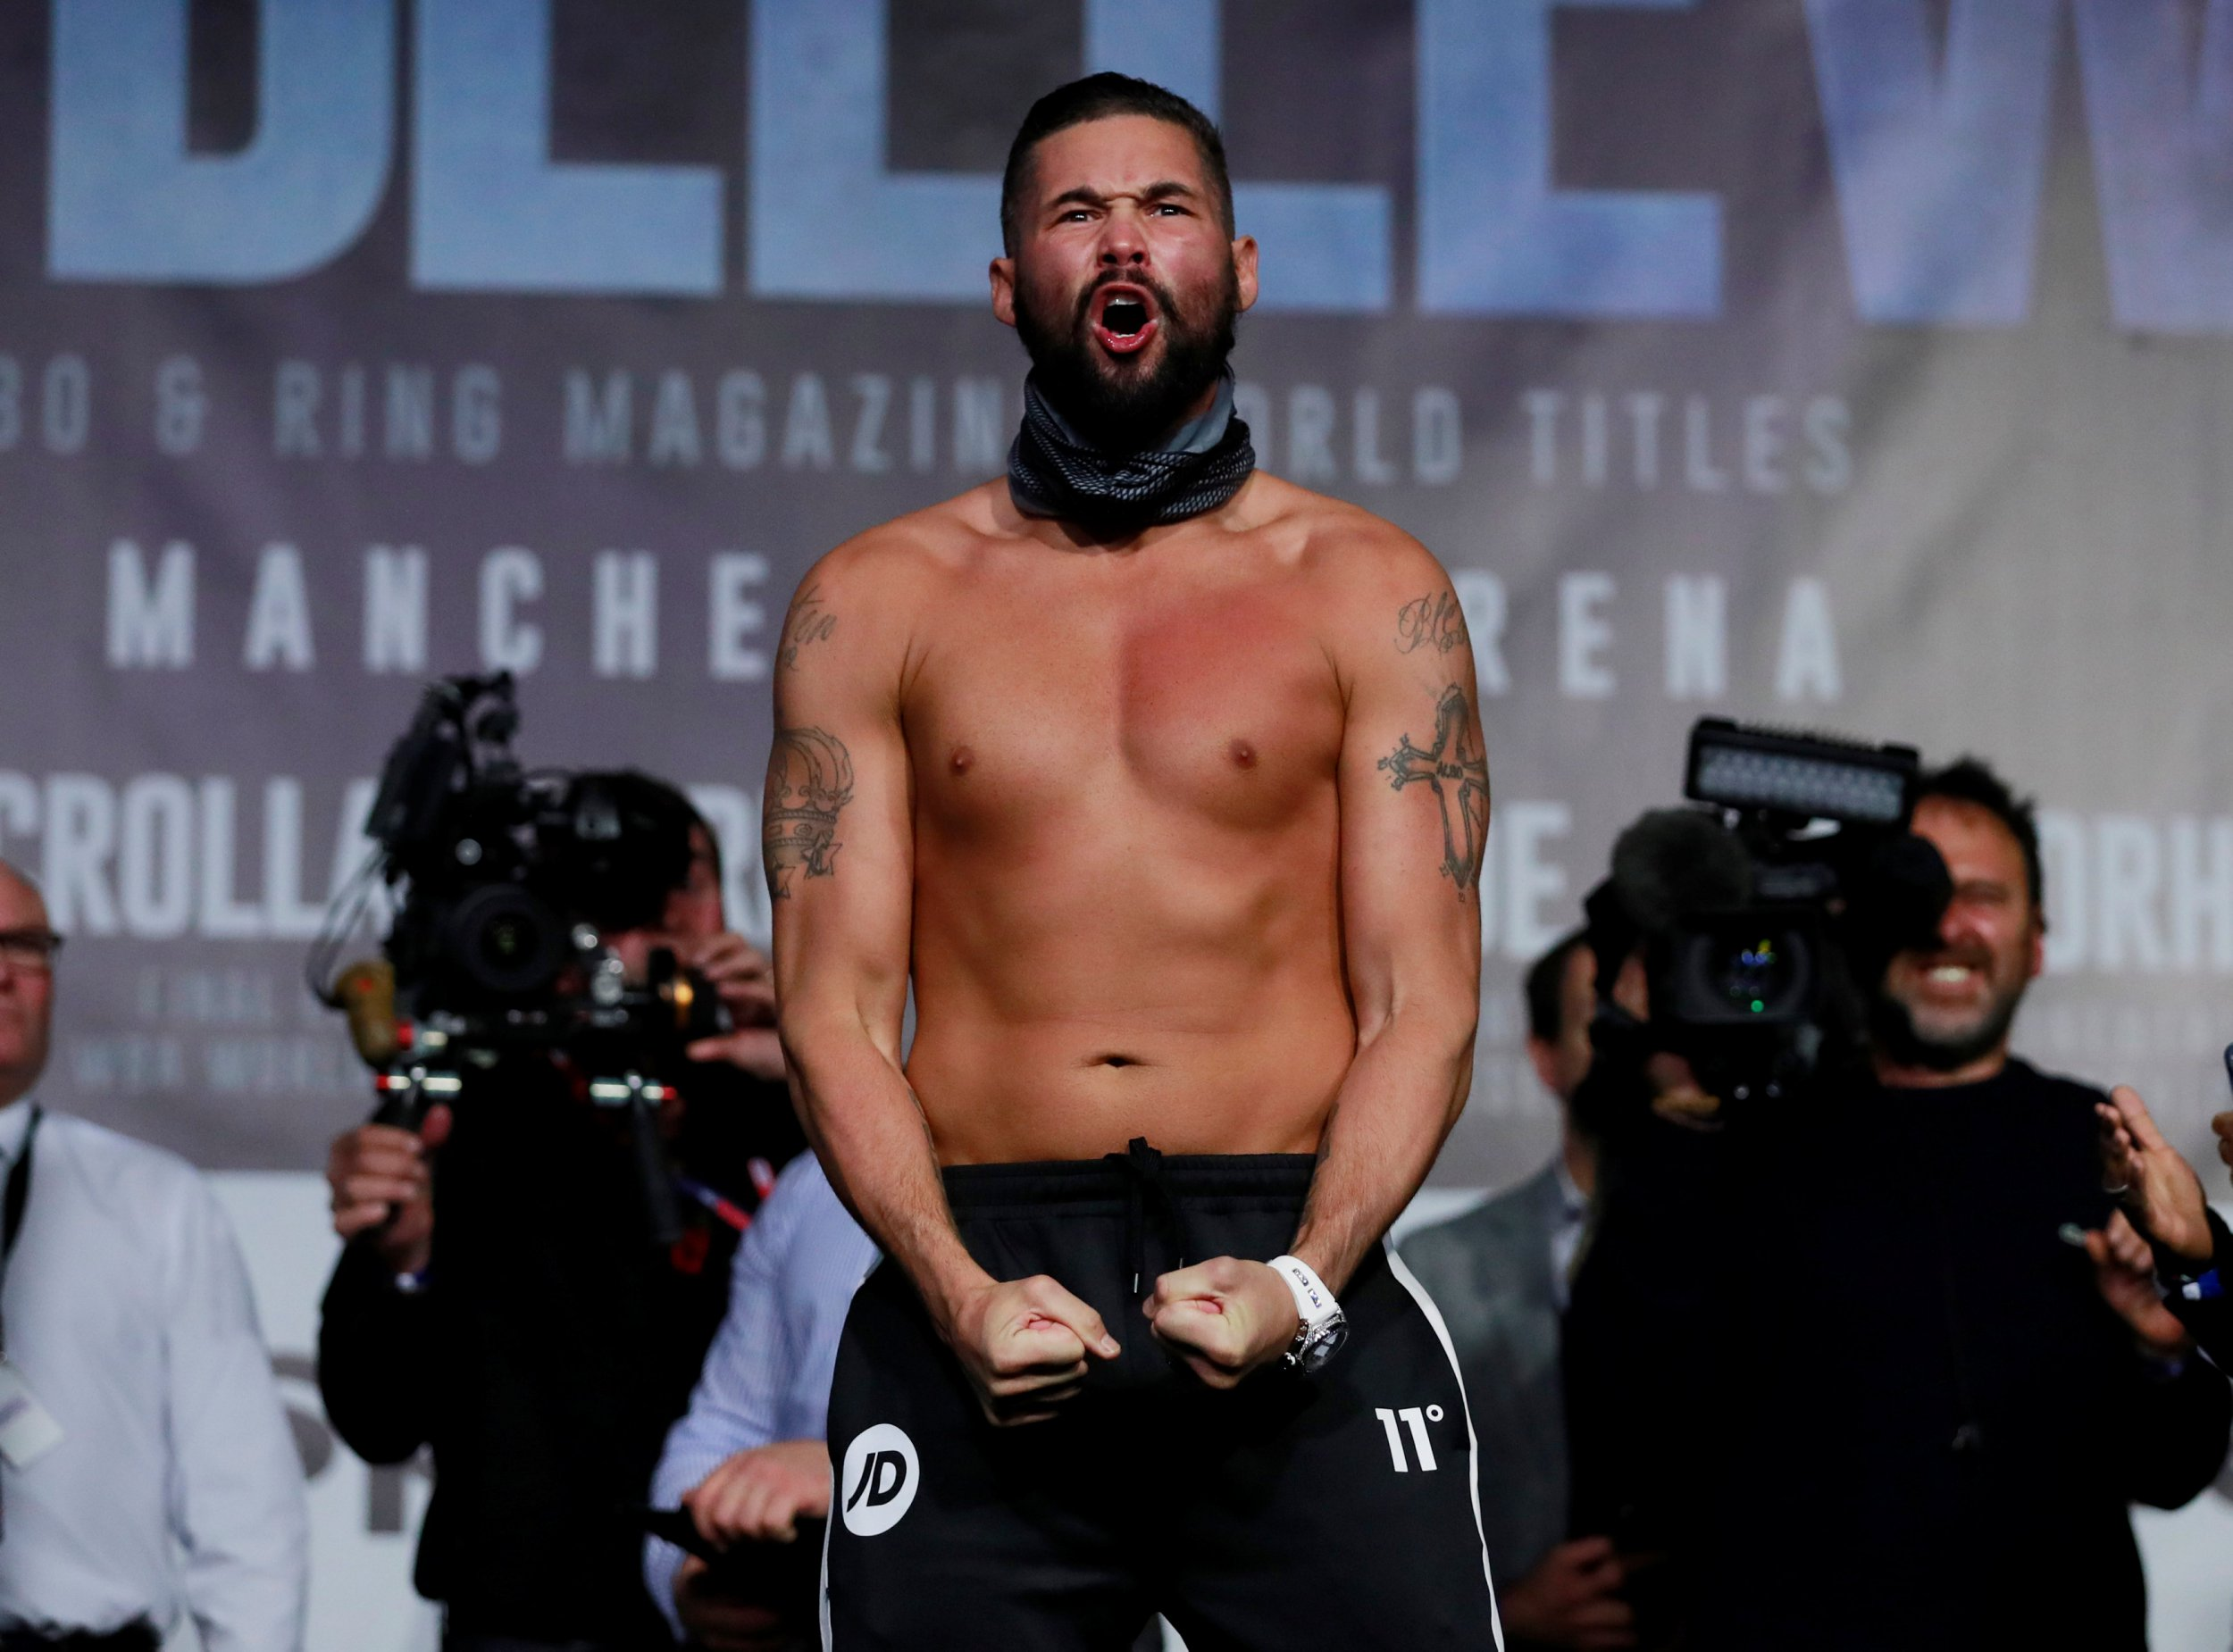 Boxing - Oleksandr Usyk & Tony Bellew Weigh-In - Manchester Central, Manchester, Britain - November 9, 2018 Tony Bellew during the weigh-in Action Images via Reuters/Andrew Couldridge